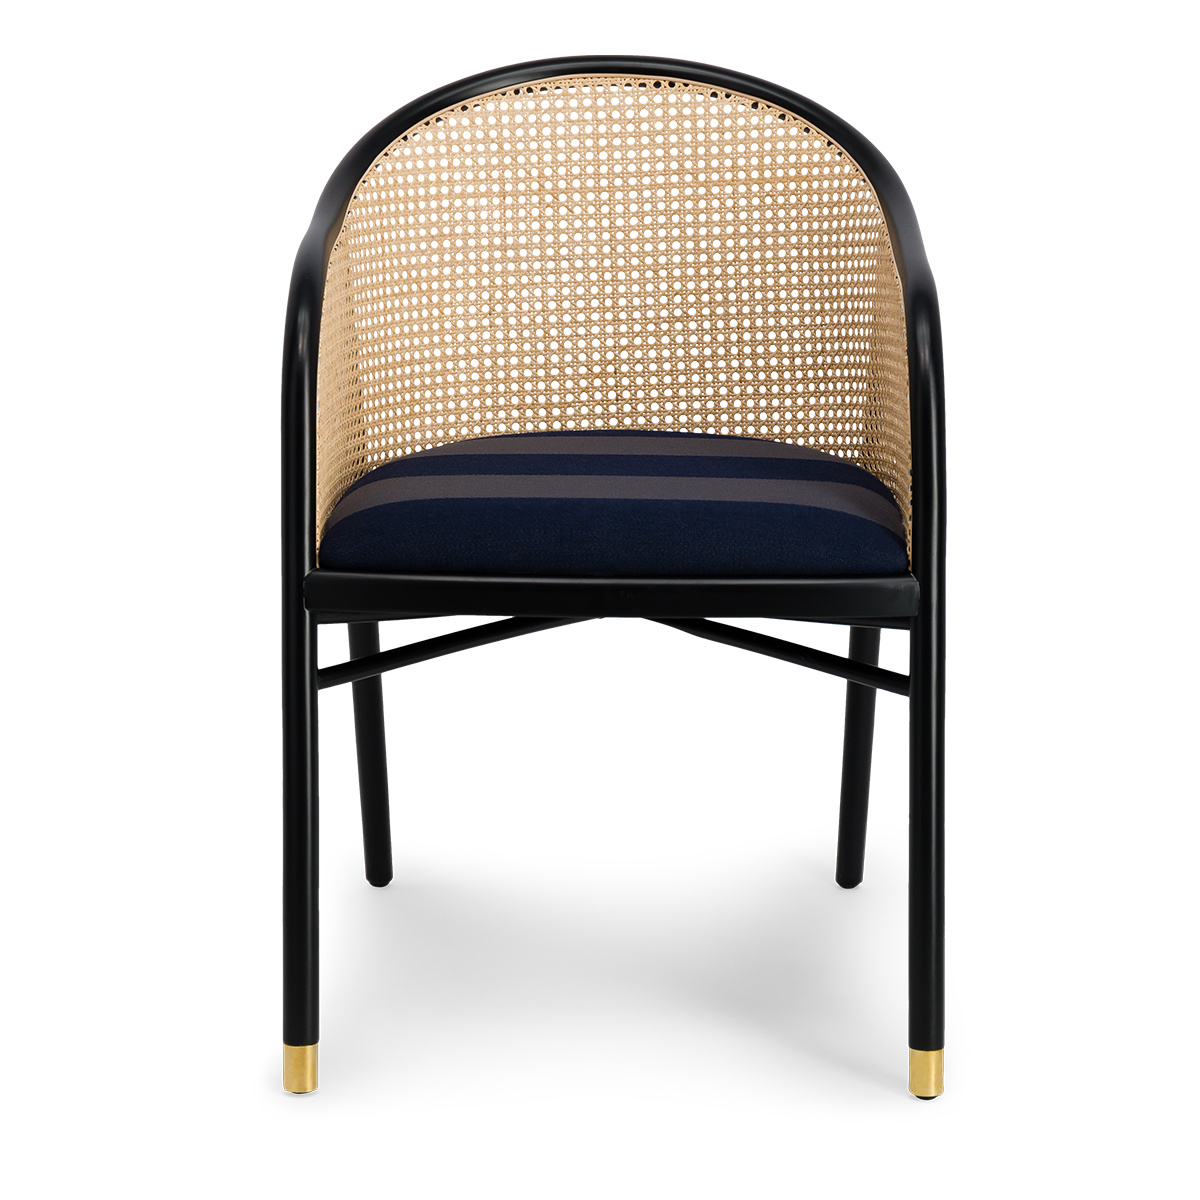 Cavallo Armchair, Kvadrat / Raf Simons Navy Blue Wool with Black Lacquered Beechwood Frame - Limited Edition